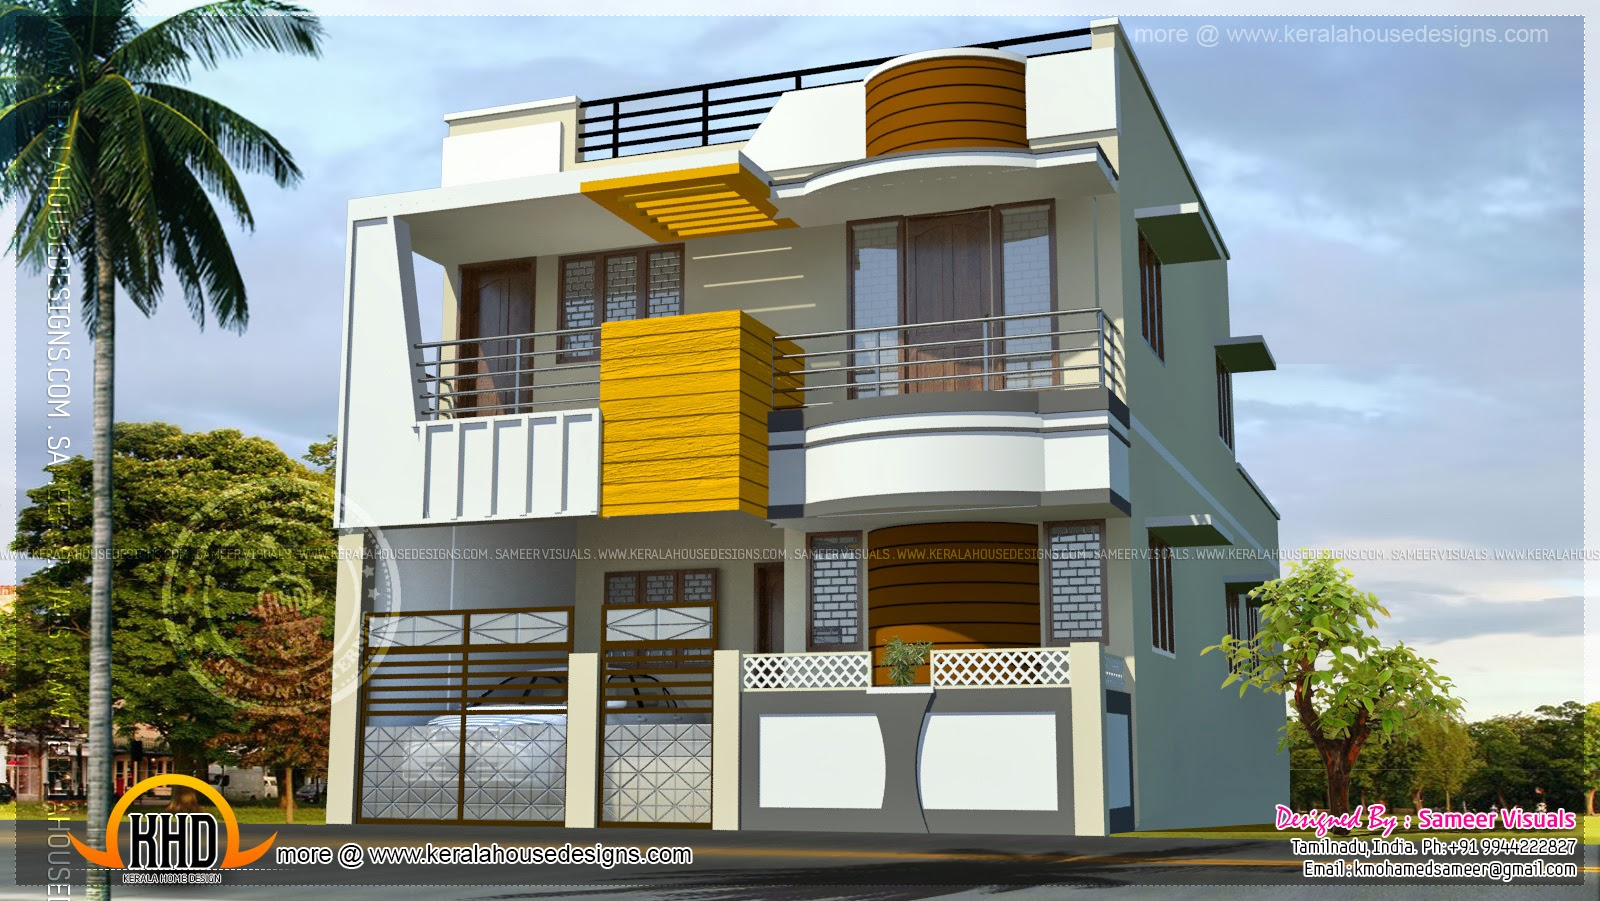 Double storied modern south indian home kerala home for Home design double floor